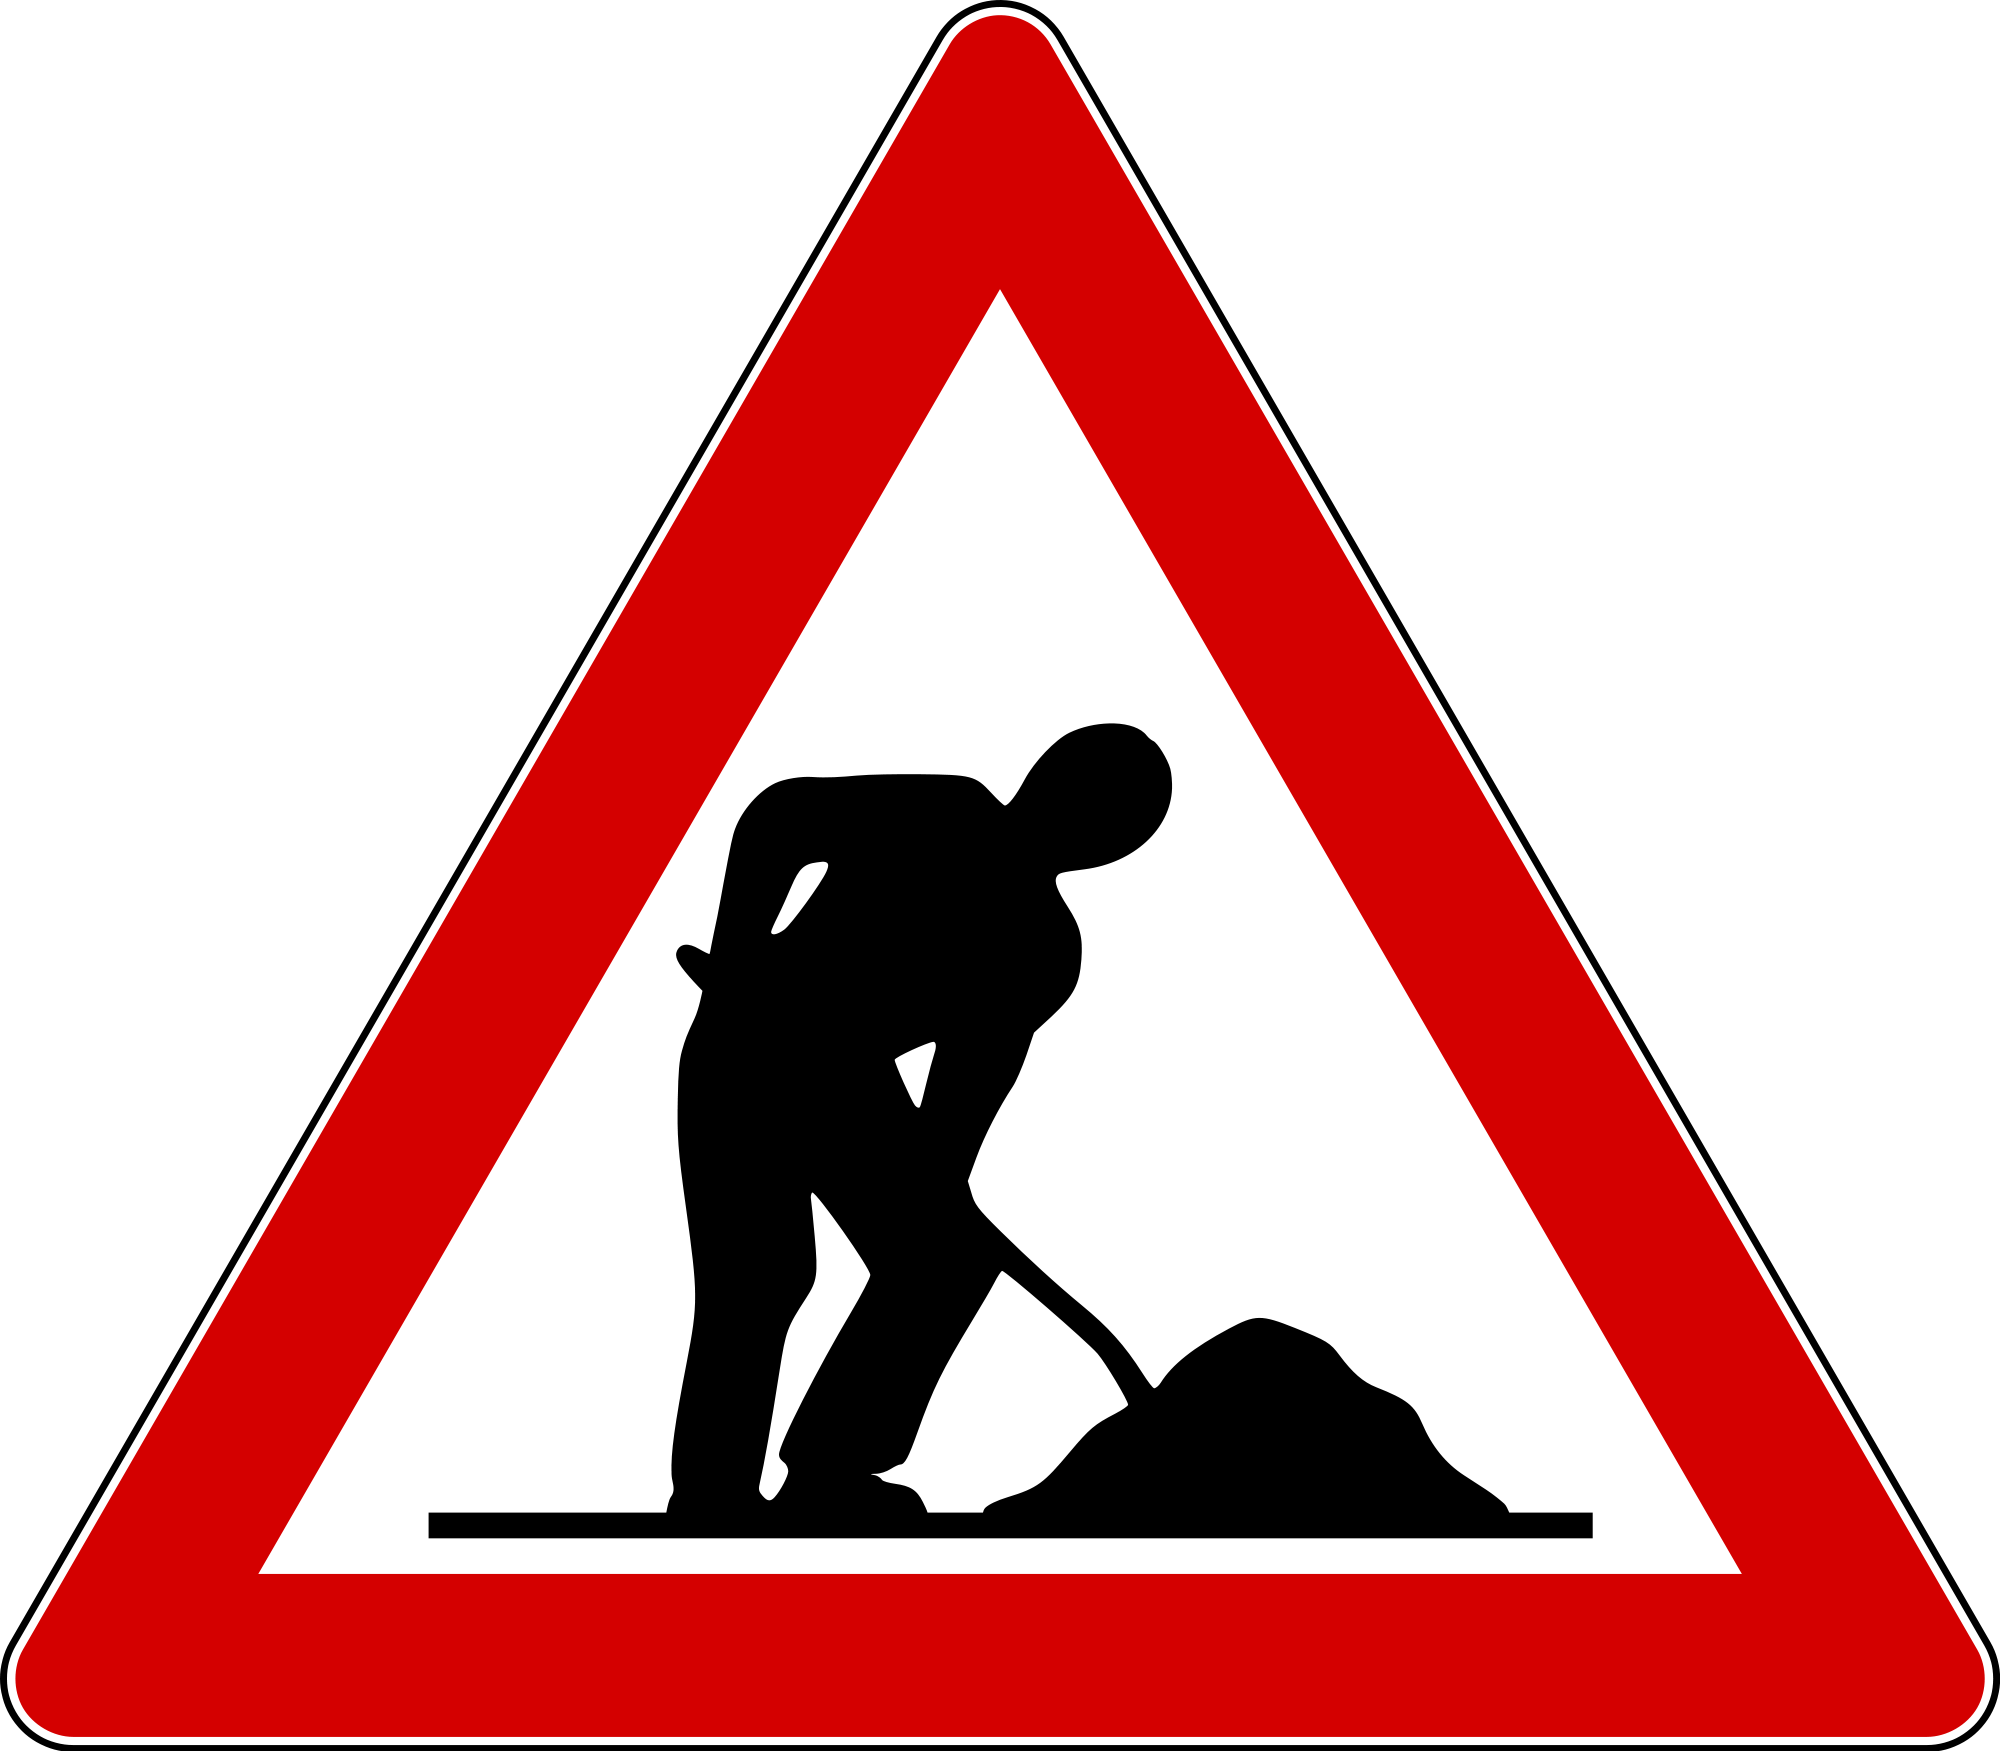 Road signs png. File italian traffic old